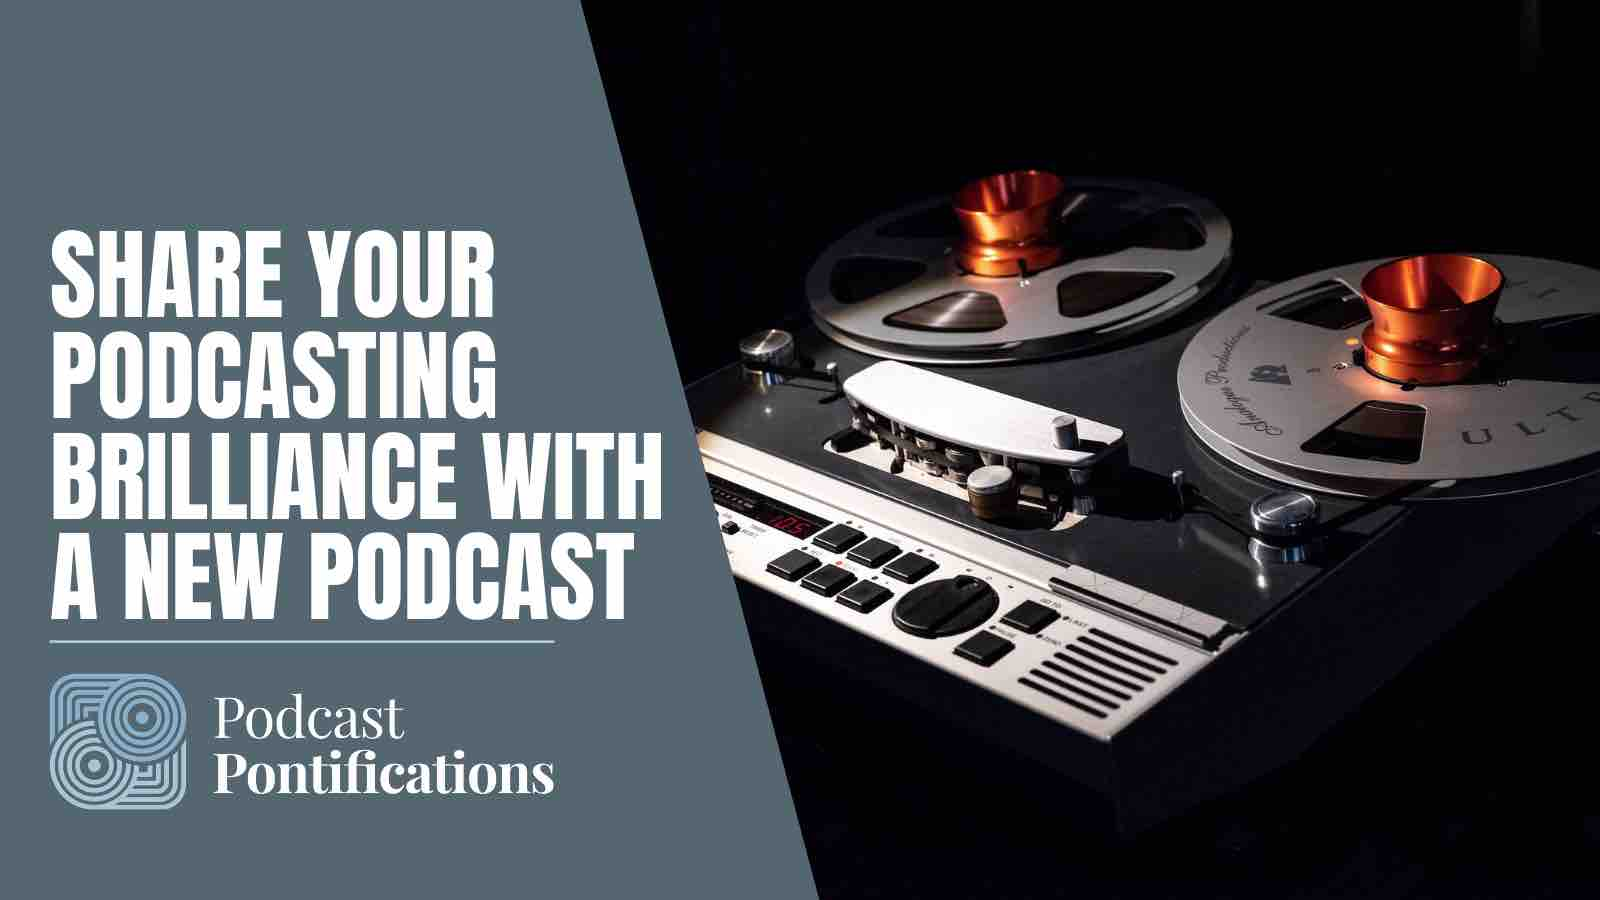 Share Your Podcasting Brilliance With A New Podcast